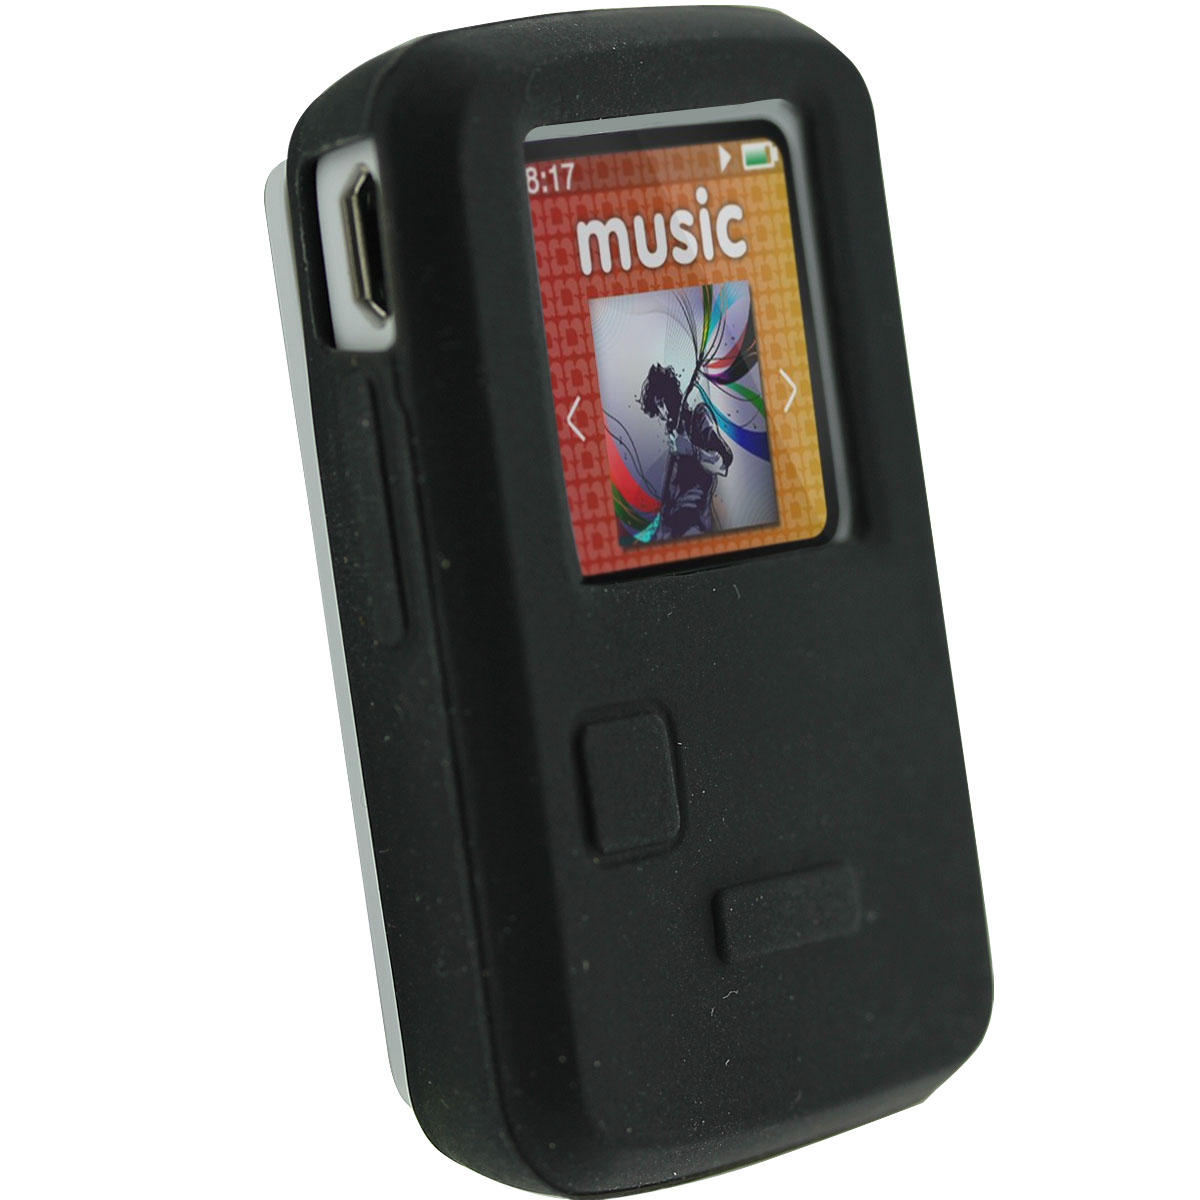 iGadgitz Black Silicone Skin Case Cover for SanDisk Sansa Clip Zip 4GB 8GB MP3 Player (Released Aug 2011)